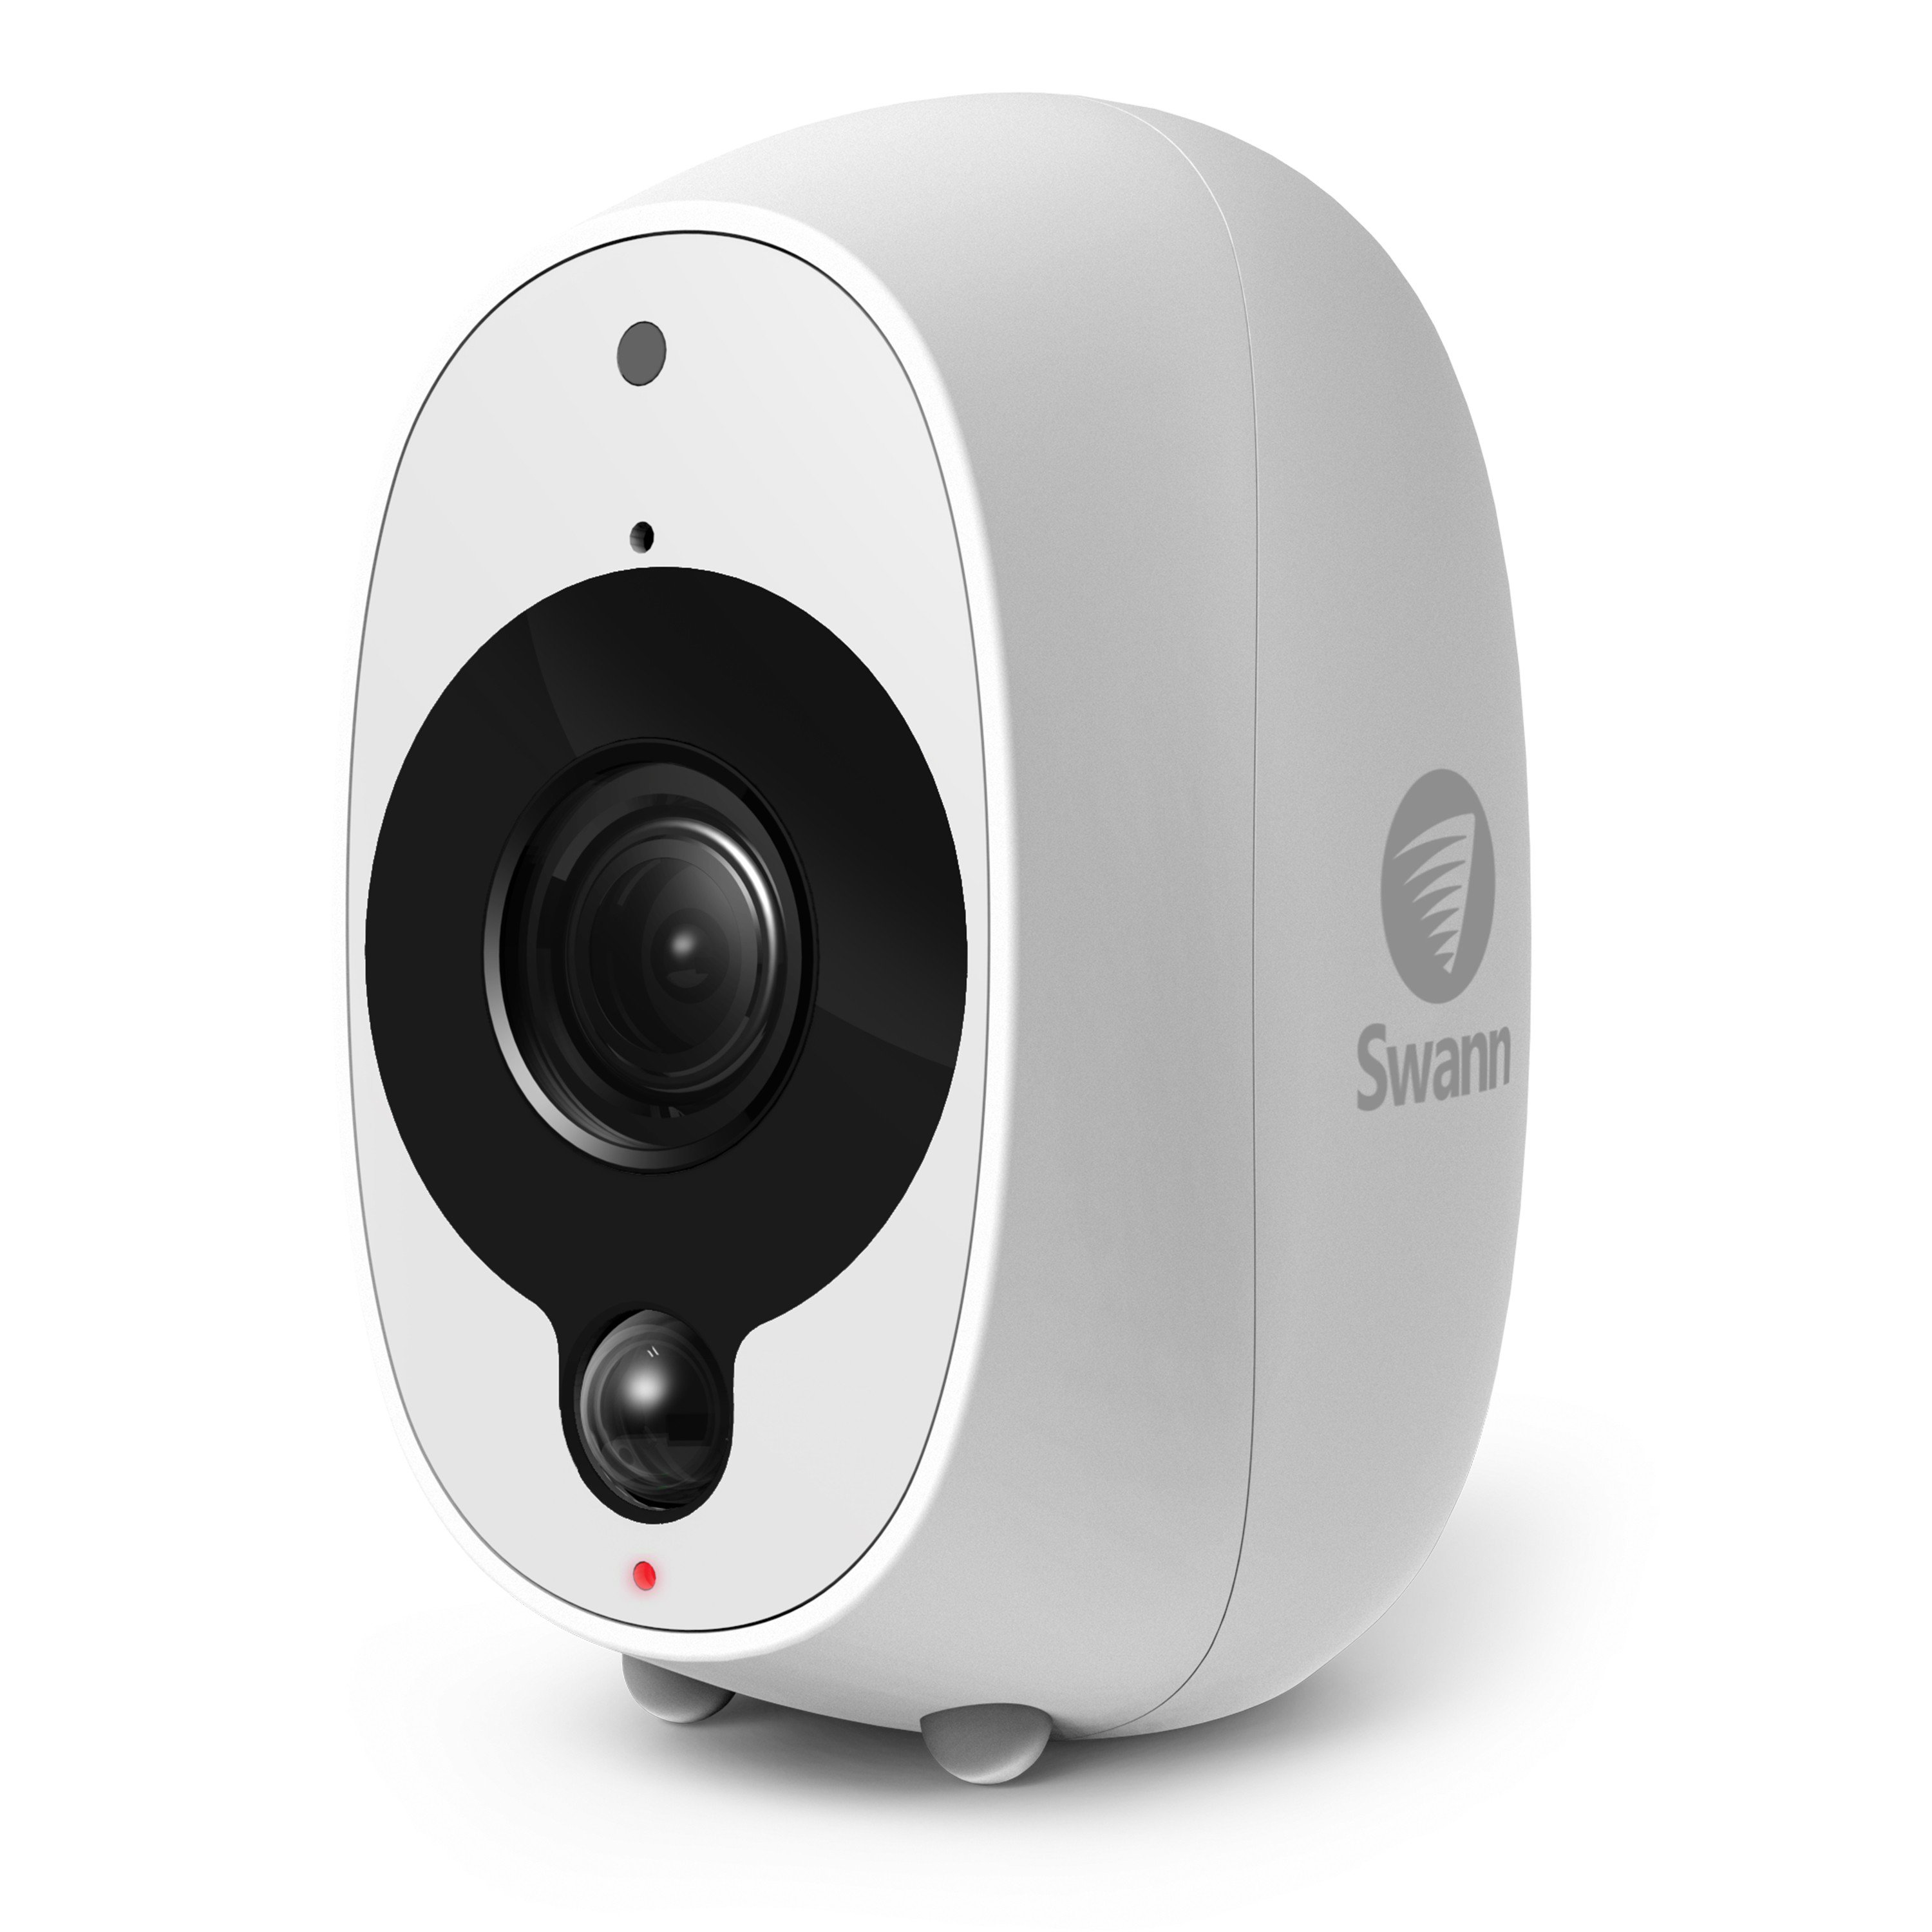 Swann Smart Security Camera 1080p Full Hd Wireless